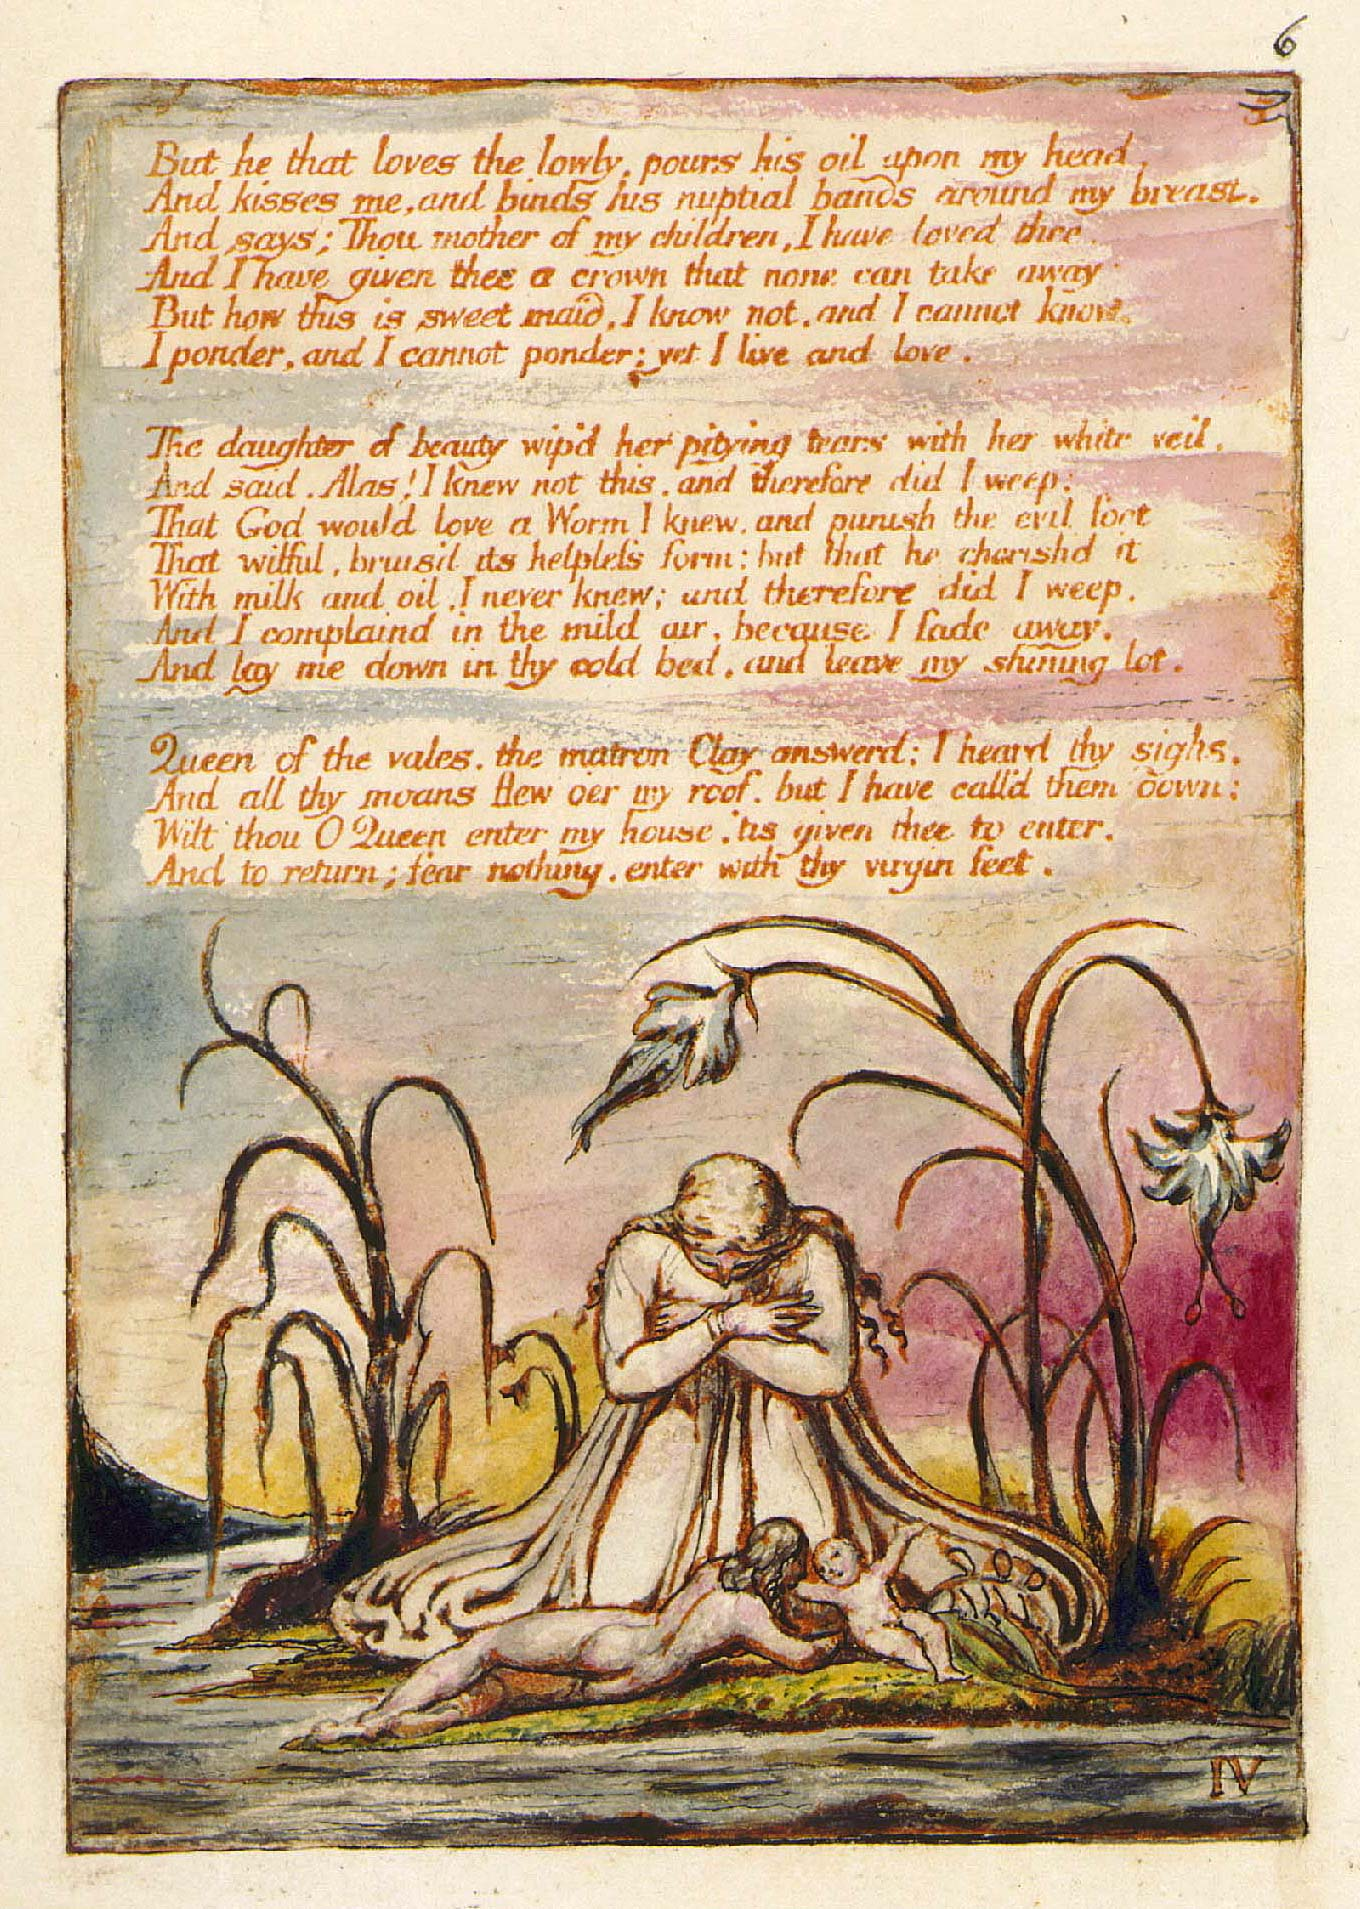 Martin Butlin, The Paintings and Drawings of William Blake | Robert